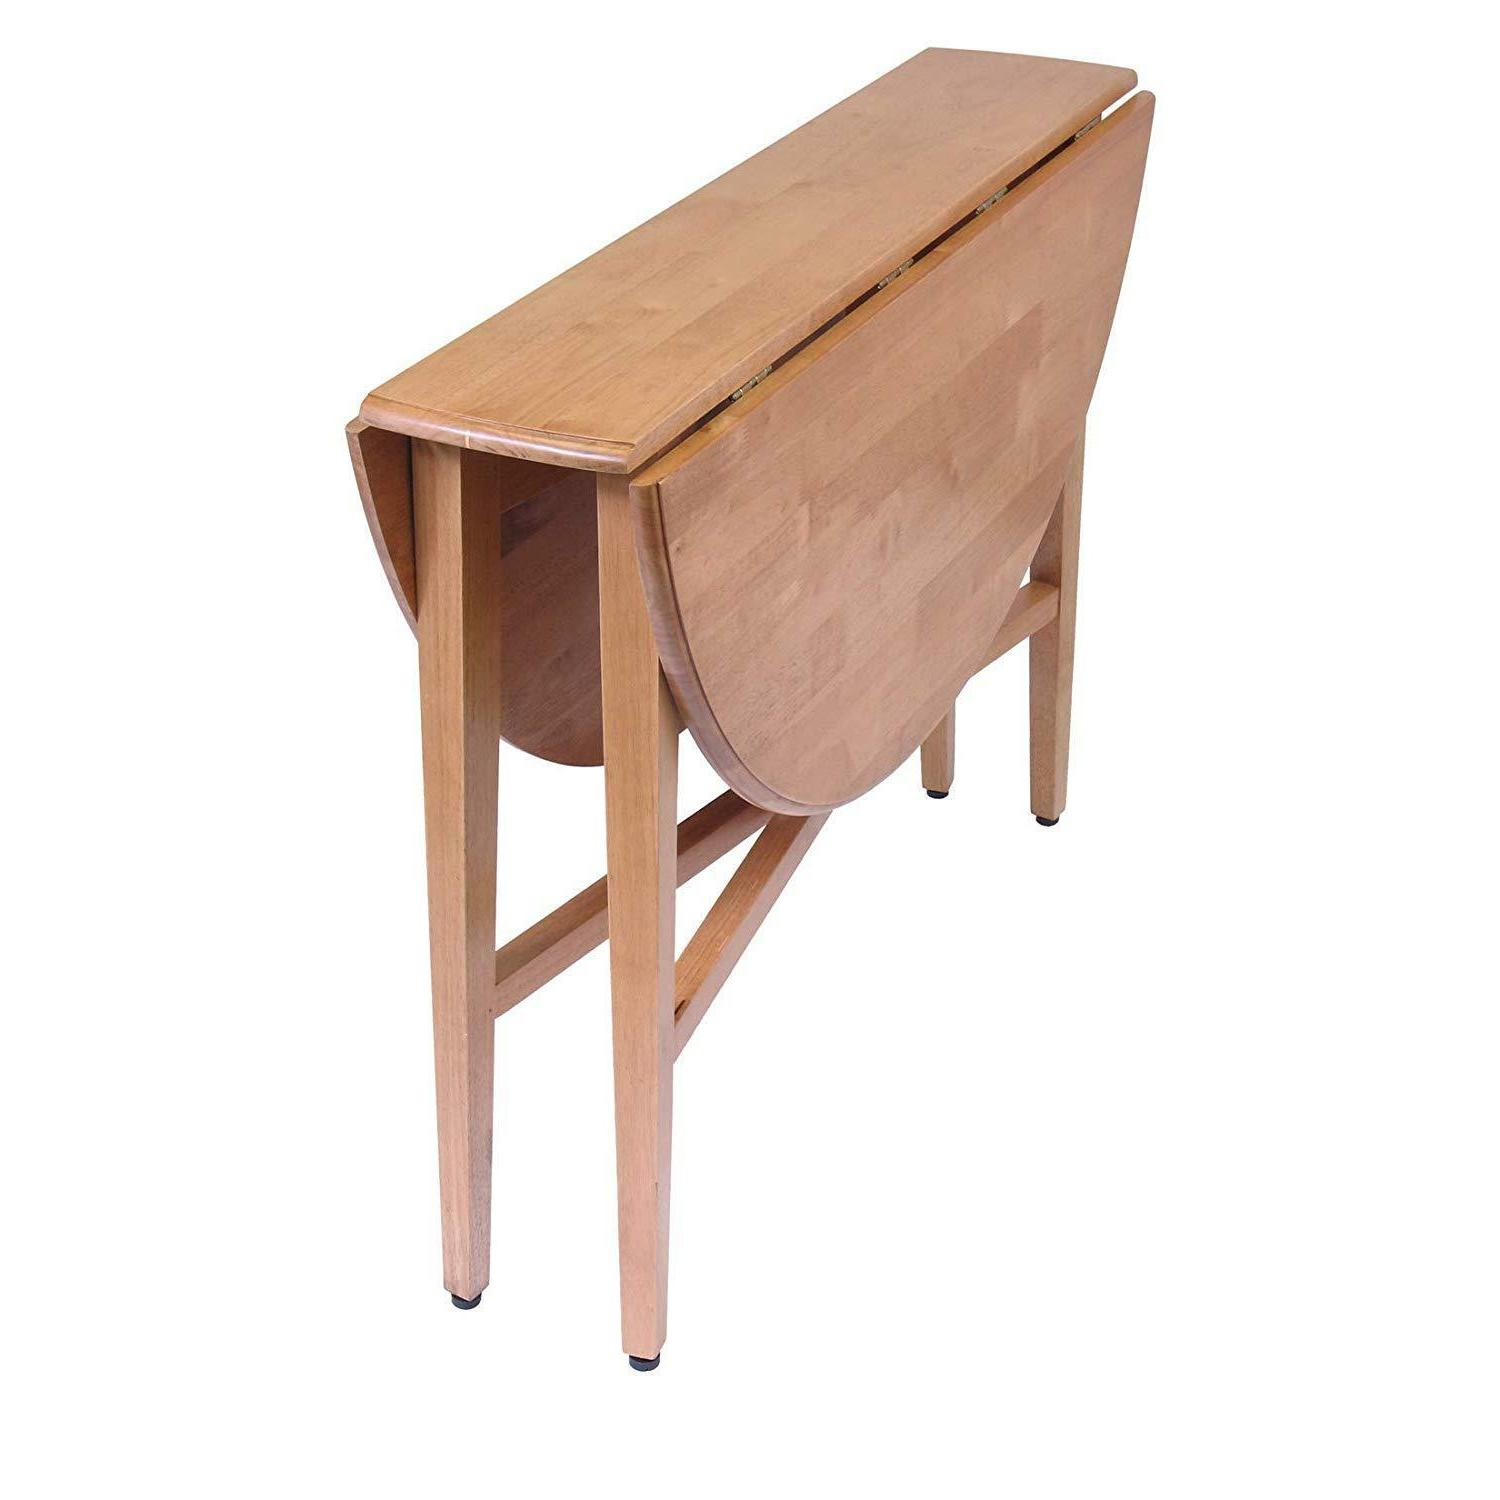 Round Drop Leaf Table Dining Kitchen Folding Compact Storage